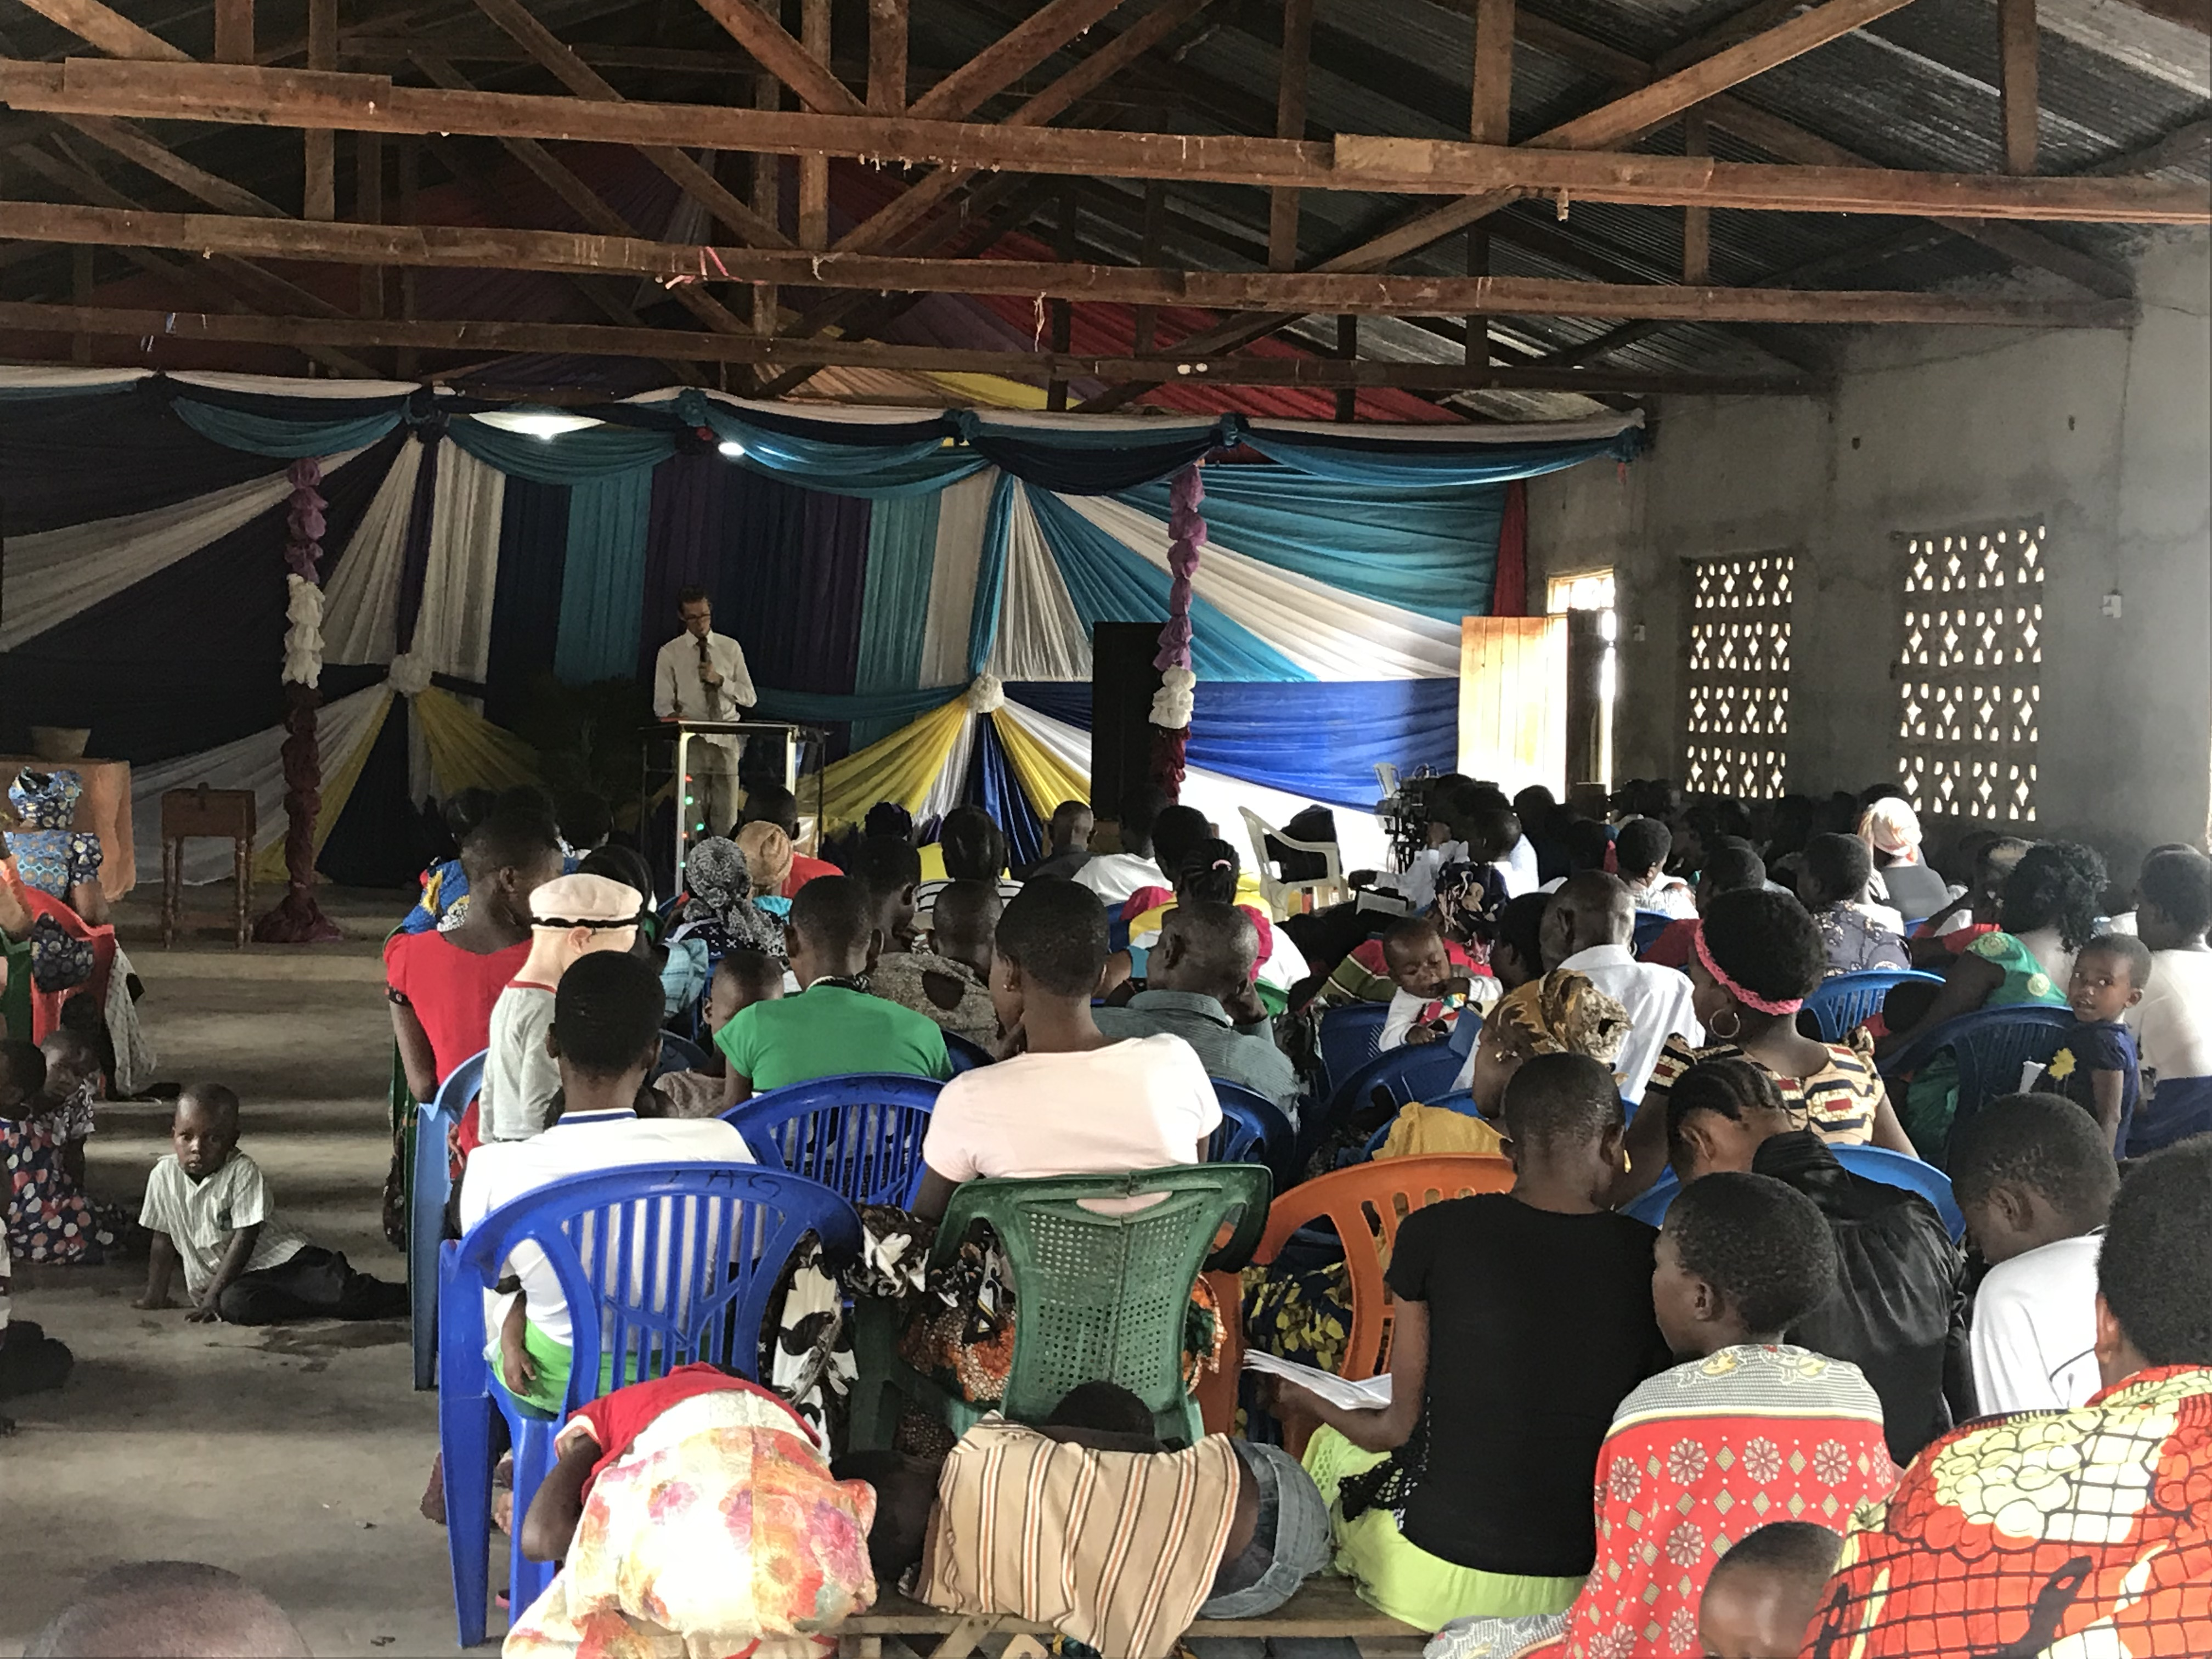 The Entrepreneurship Project in Mwanza, Tanzania (February 2019 Down to Earth)